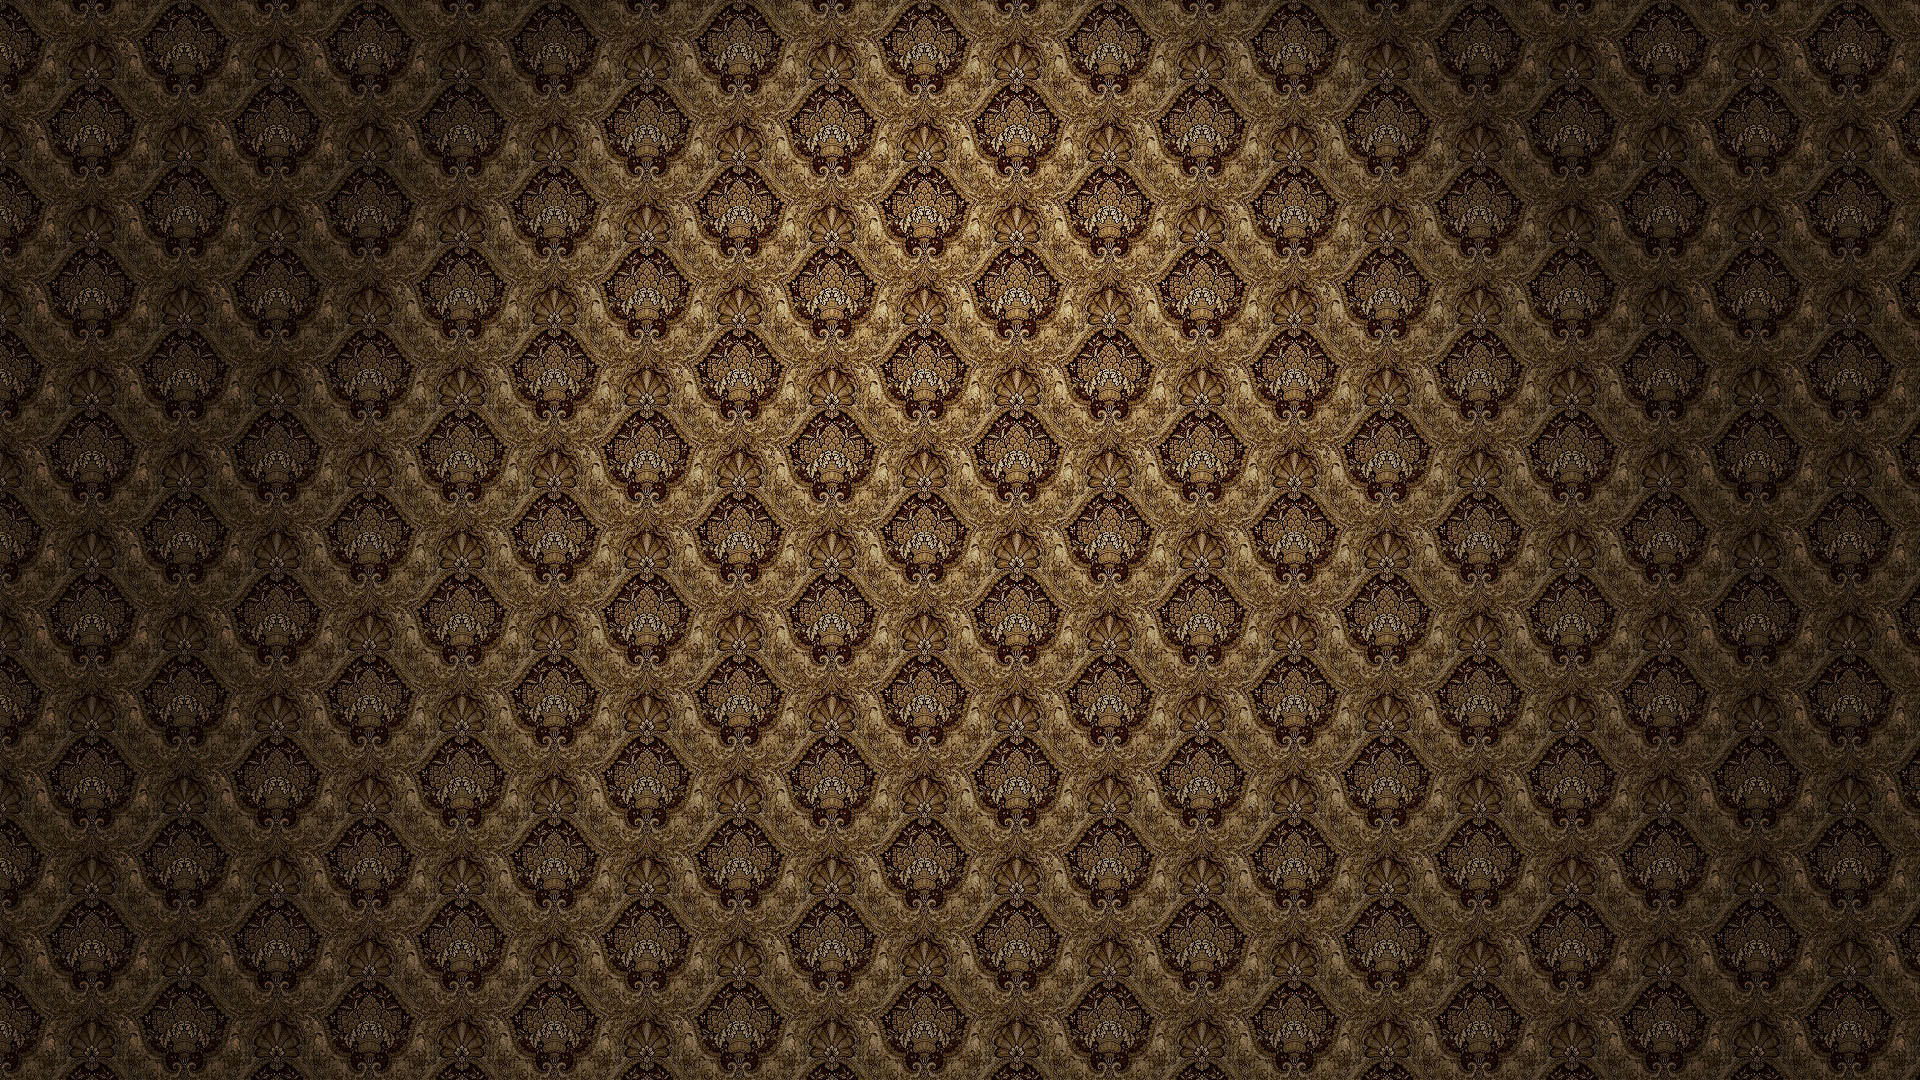 Black and Gold wallpaper 1920x1080 73949 1920x1080